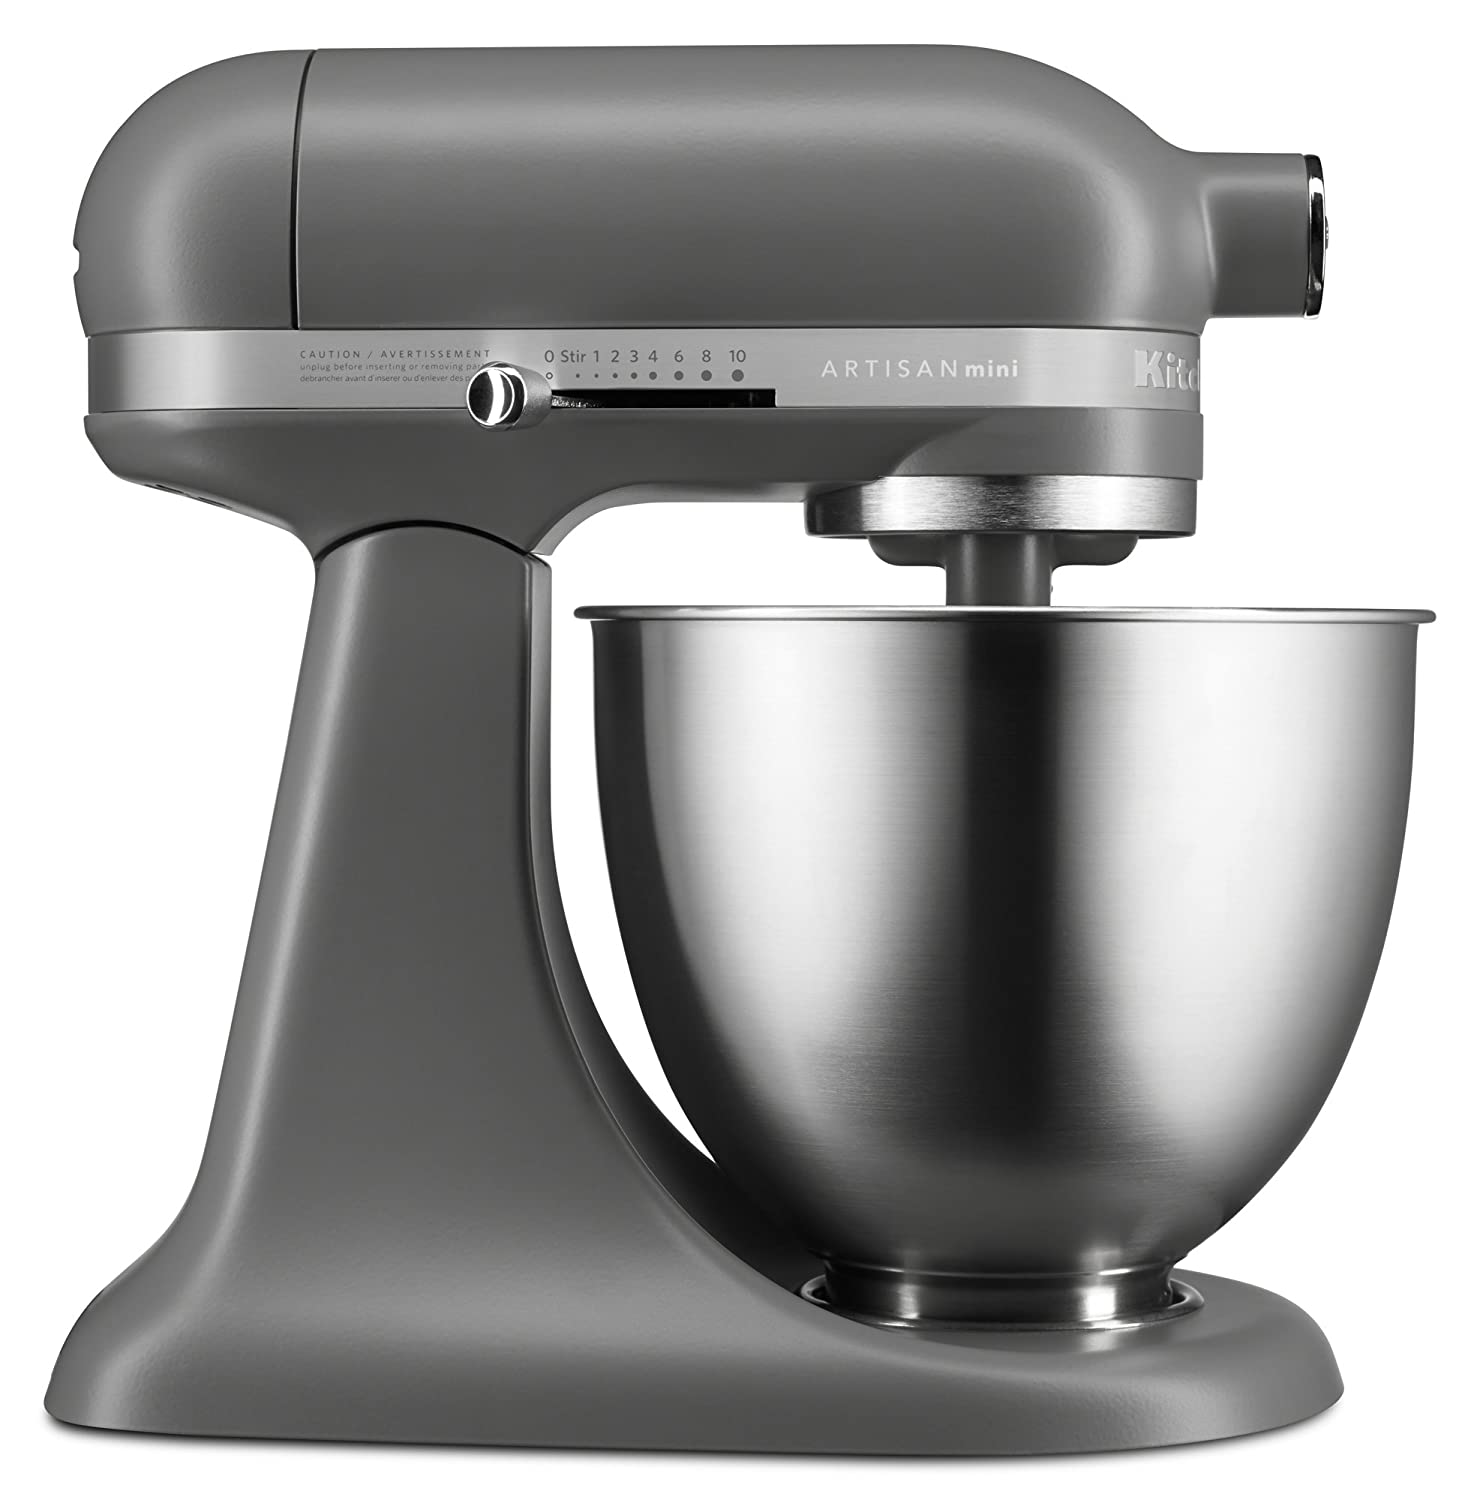 KitchenAid KSM3311XFG Artisan Mini Series Tilt-Head Stand Mixer, Matte Gray, 3.5 quart